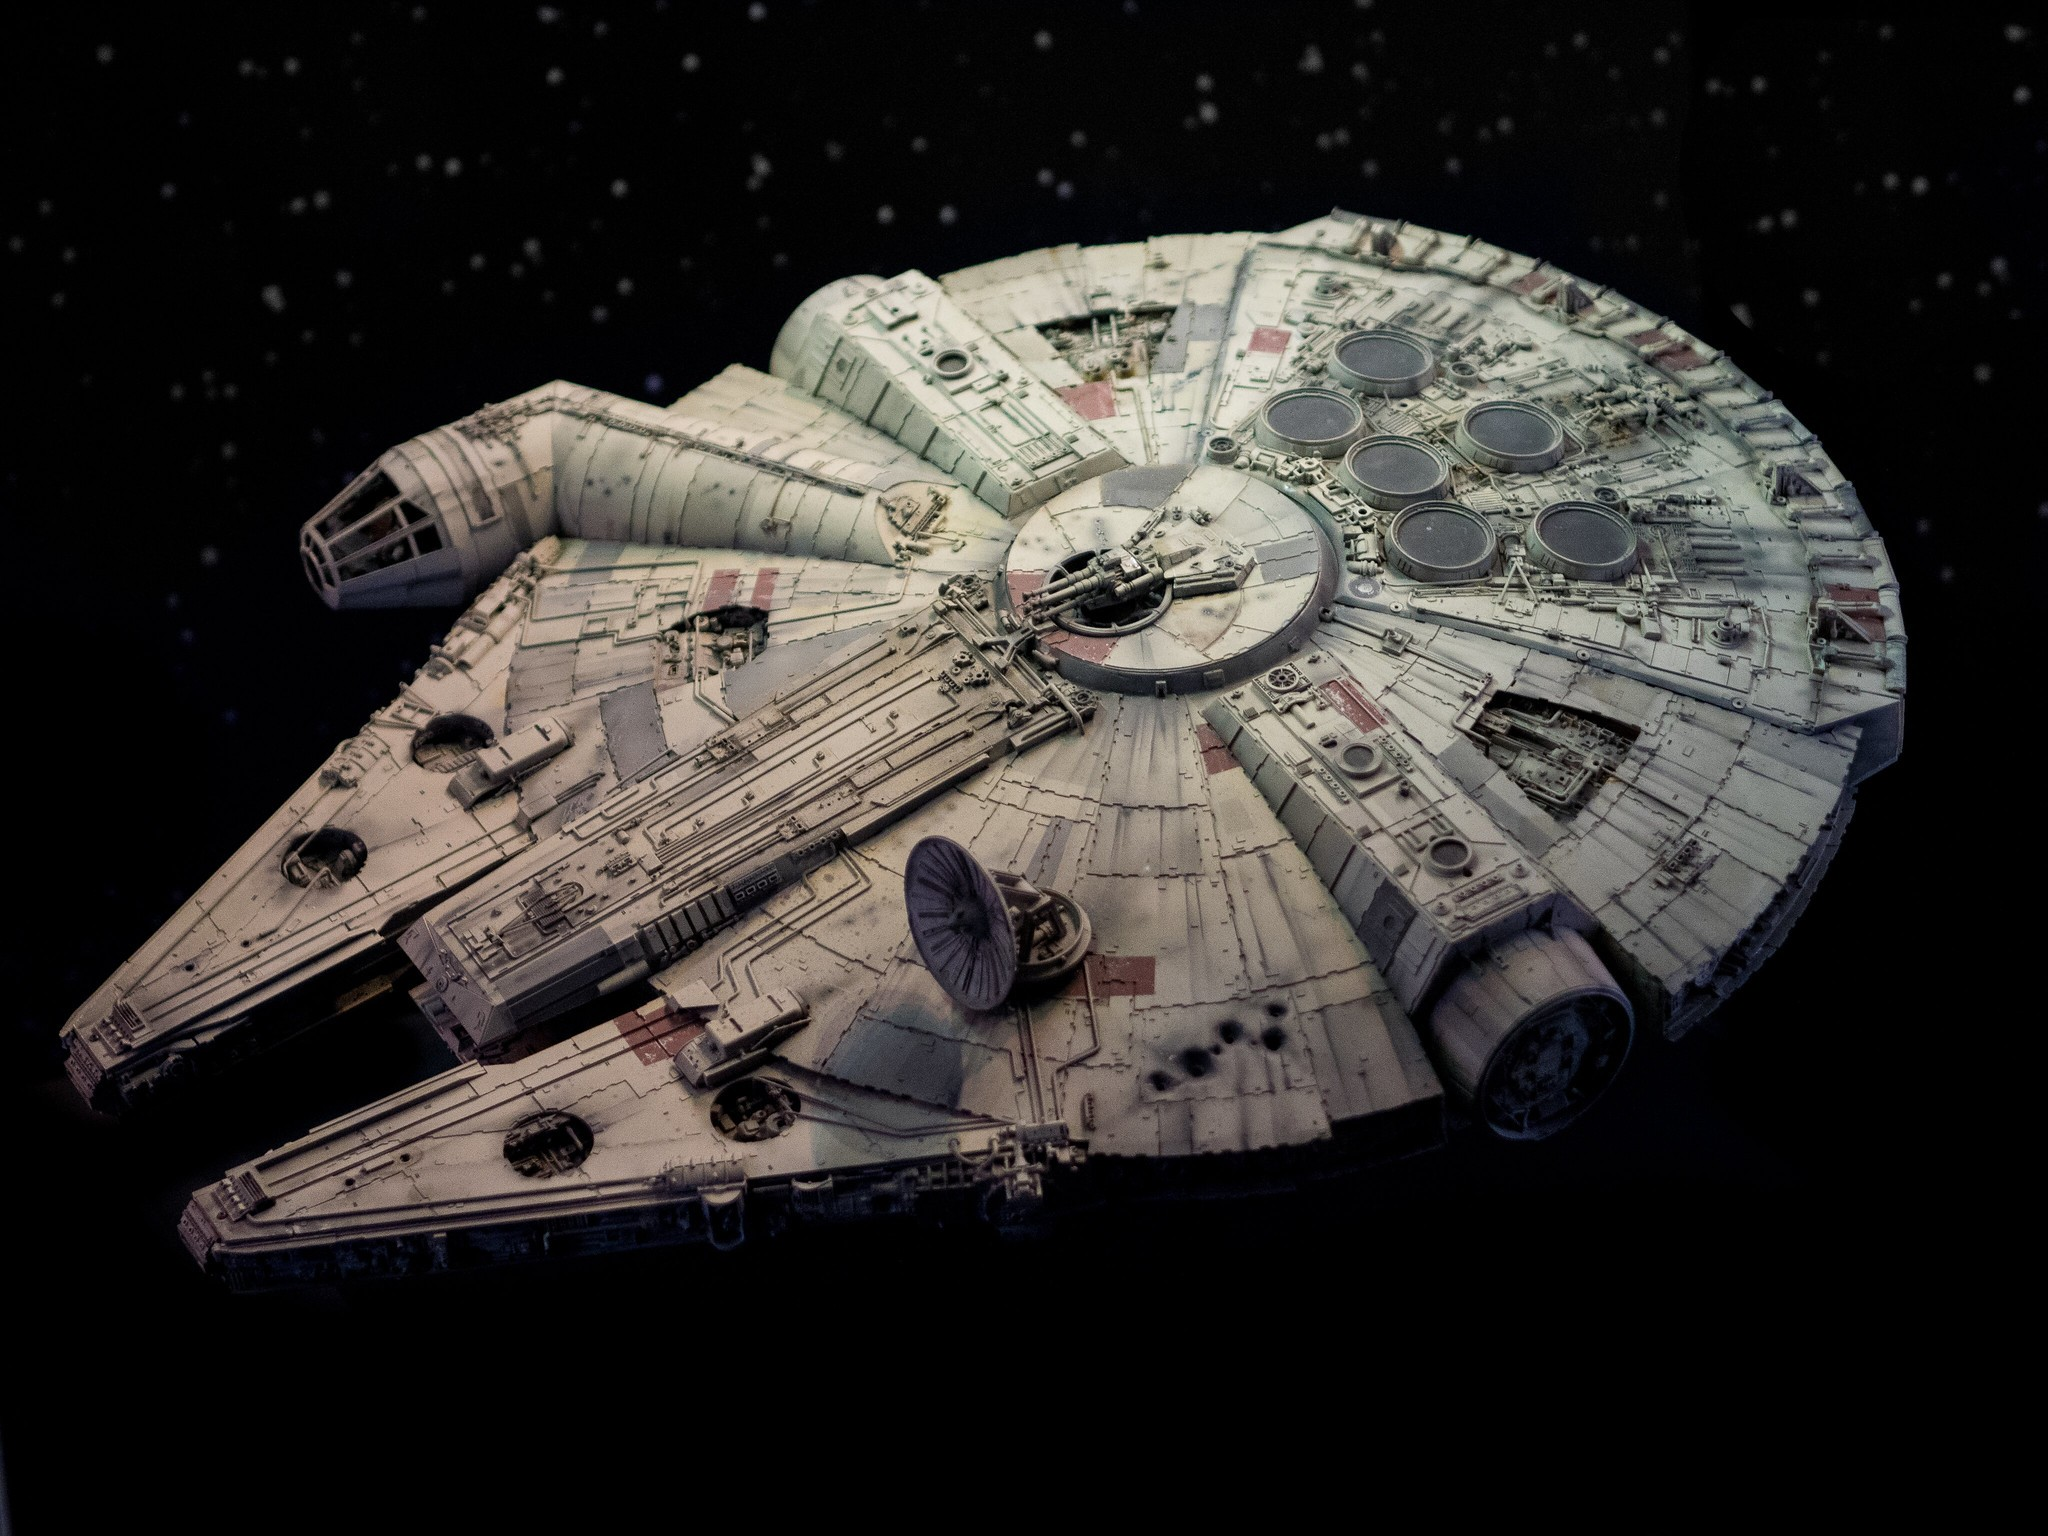 Millennium Falcon, a nave de Star Wars (Foto: Flickr/William Warby/Creative Commons)